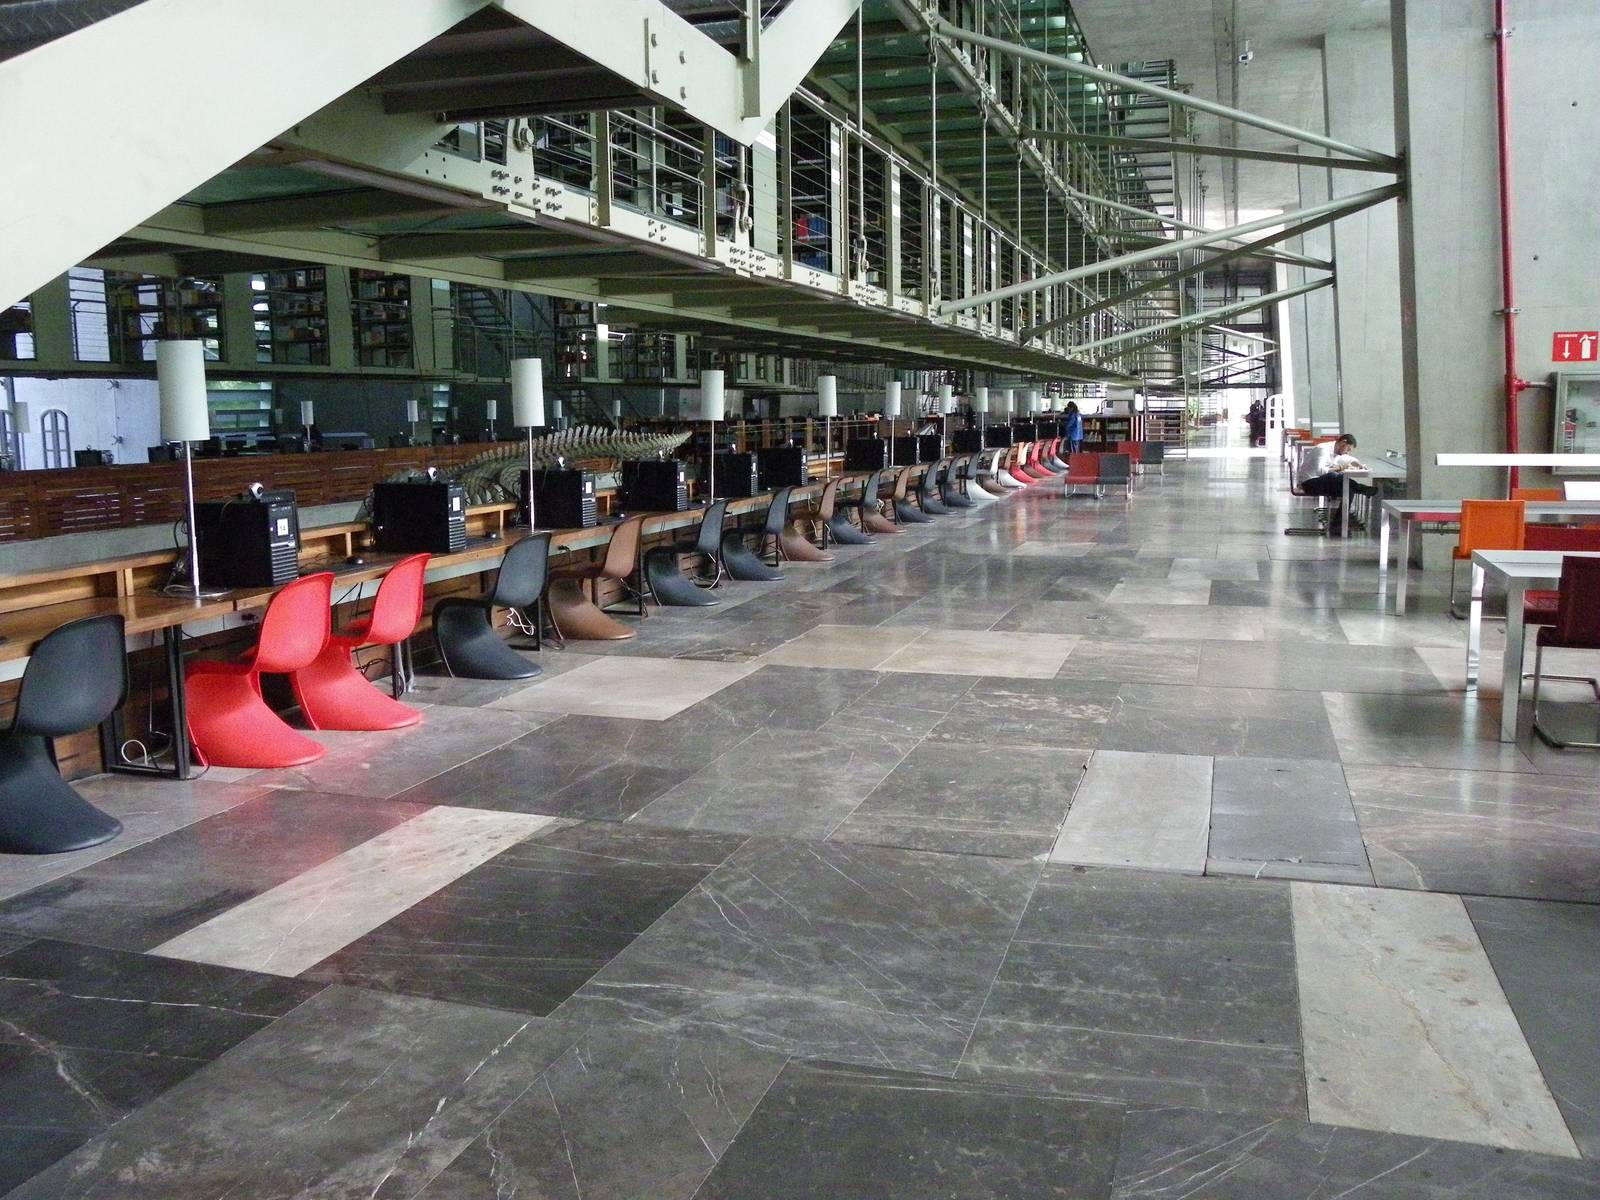 biblioteca vasconcelos6 Biblioteca Vasconcelos   Public Library in Mexico City